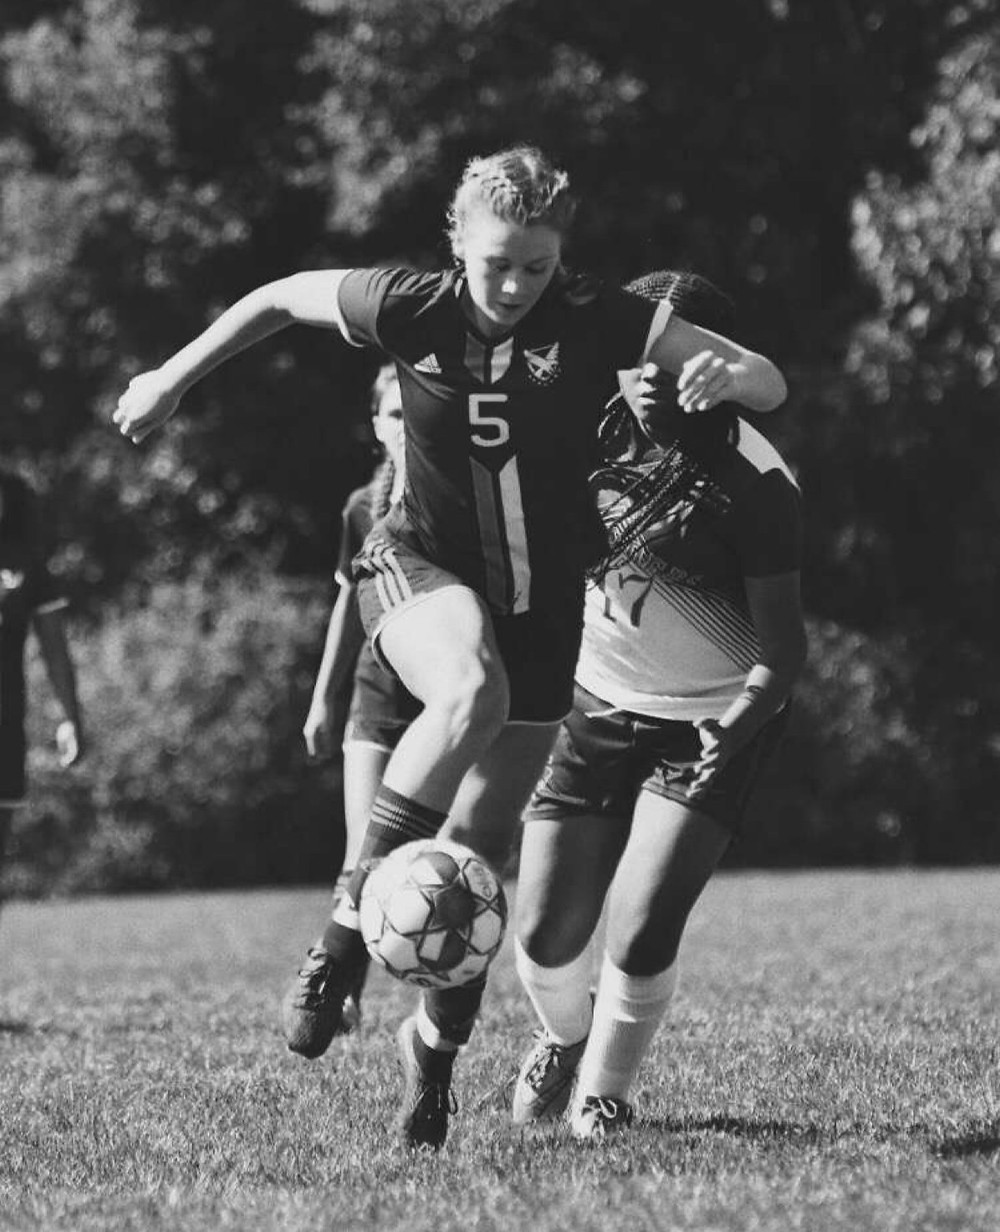 Captain Nicole Foster pushing the ball up the field.